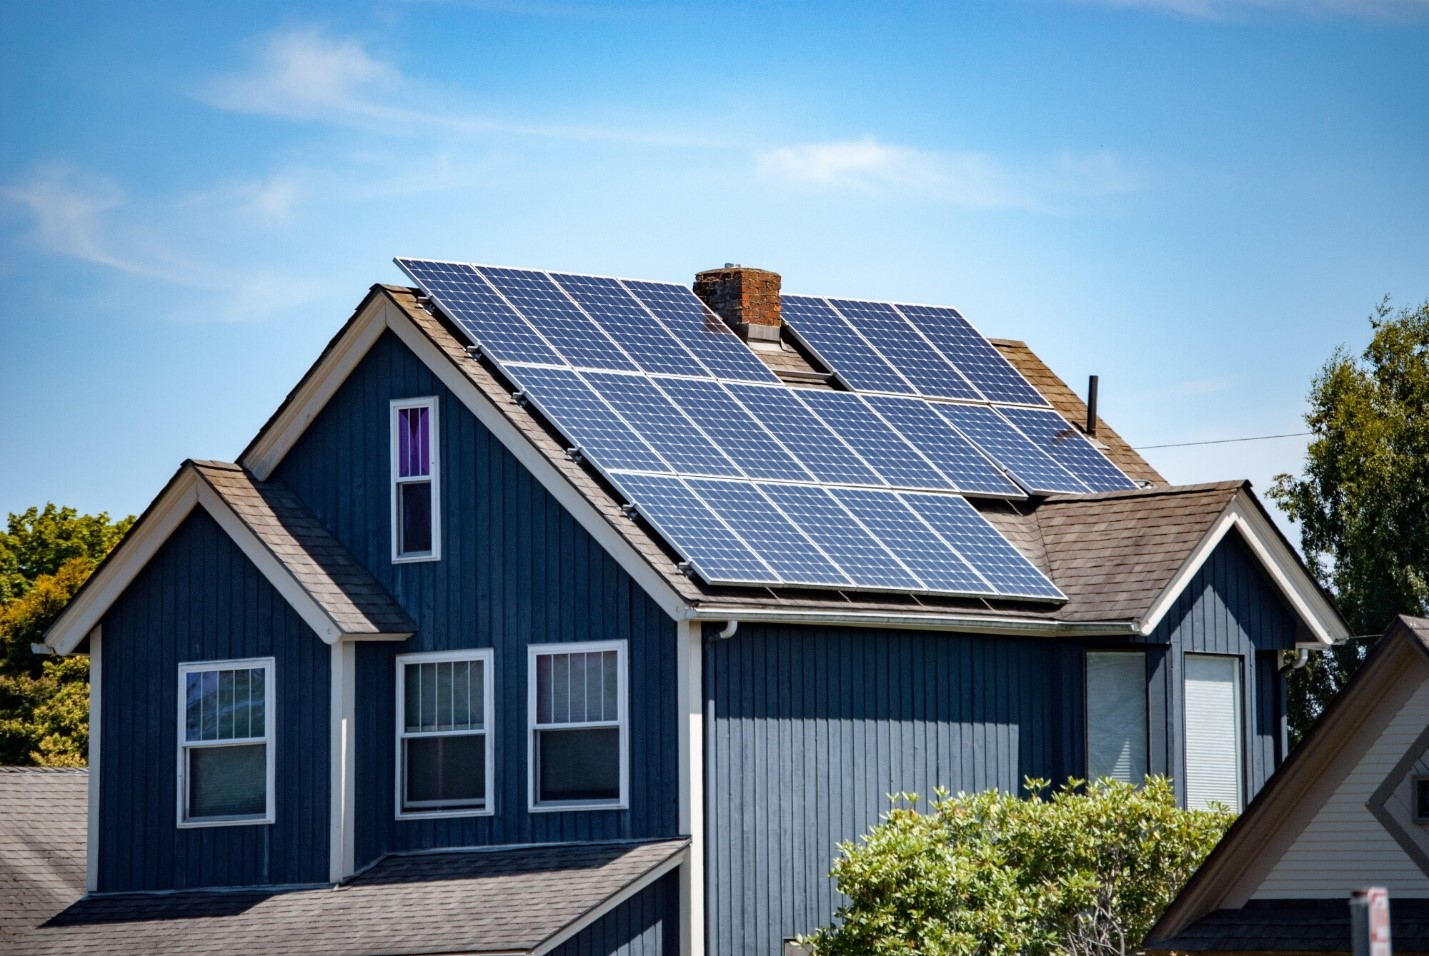 Top 5 Solar Panel Cleaning Products and Tools